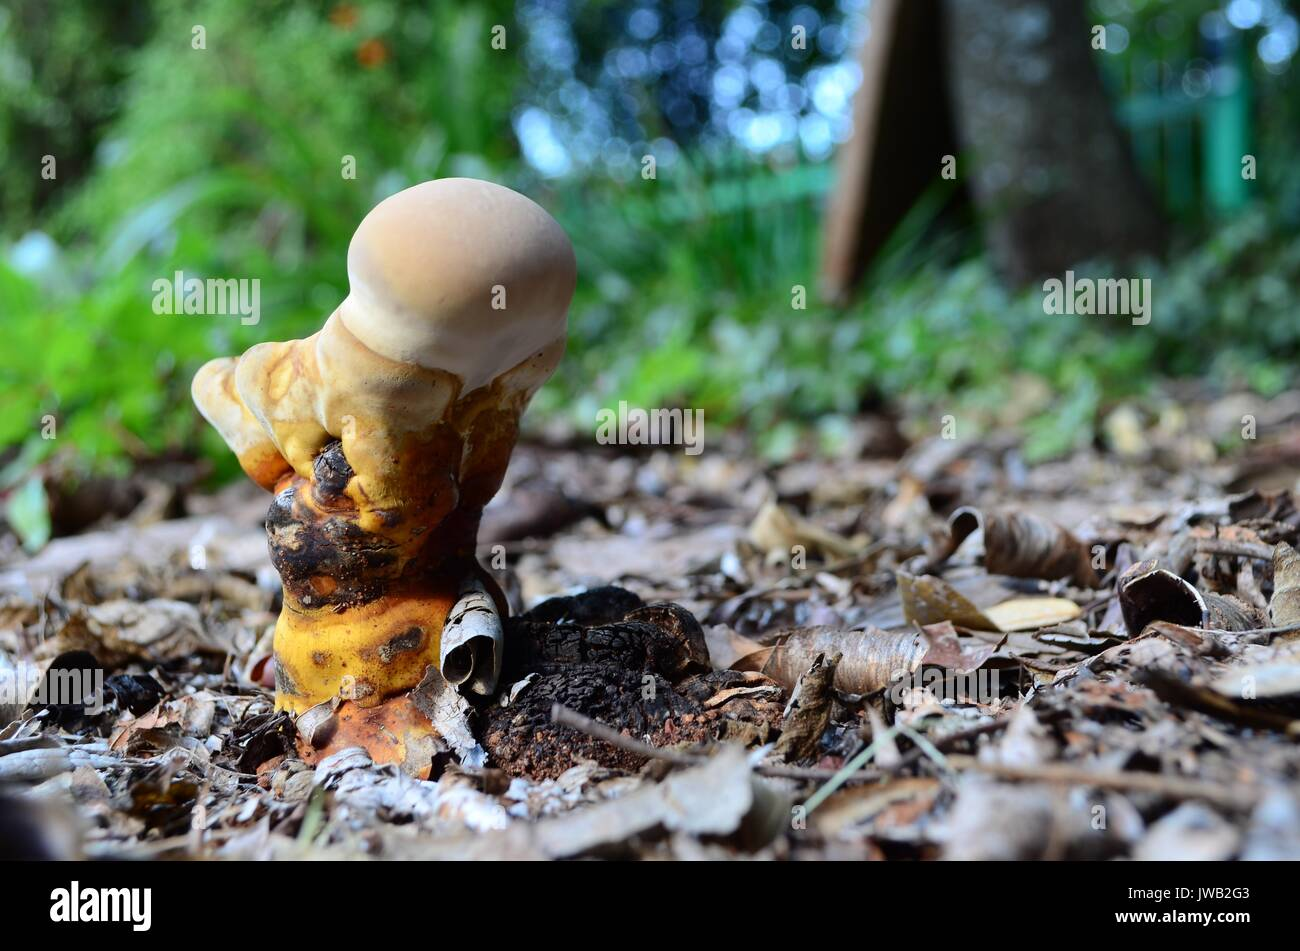 Close up of a Saprophytic fungus. Grows on decaying organic matter and breaks it down. Harmless for humans and animals. Beneficial for plant growth. - Stock Image